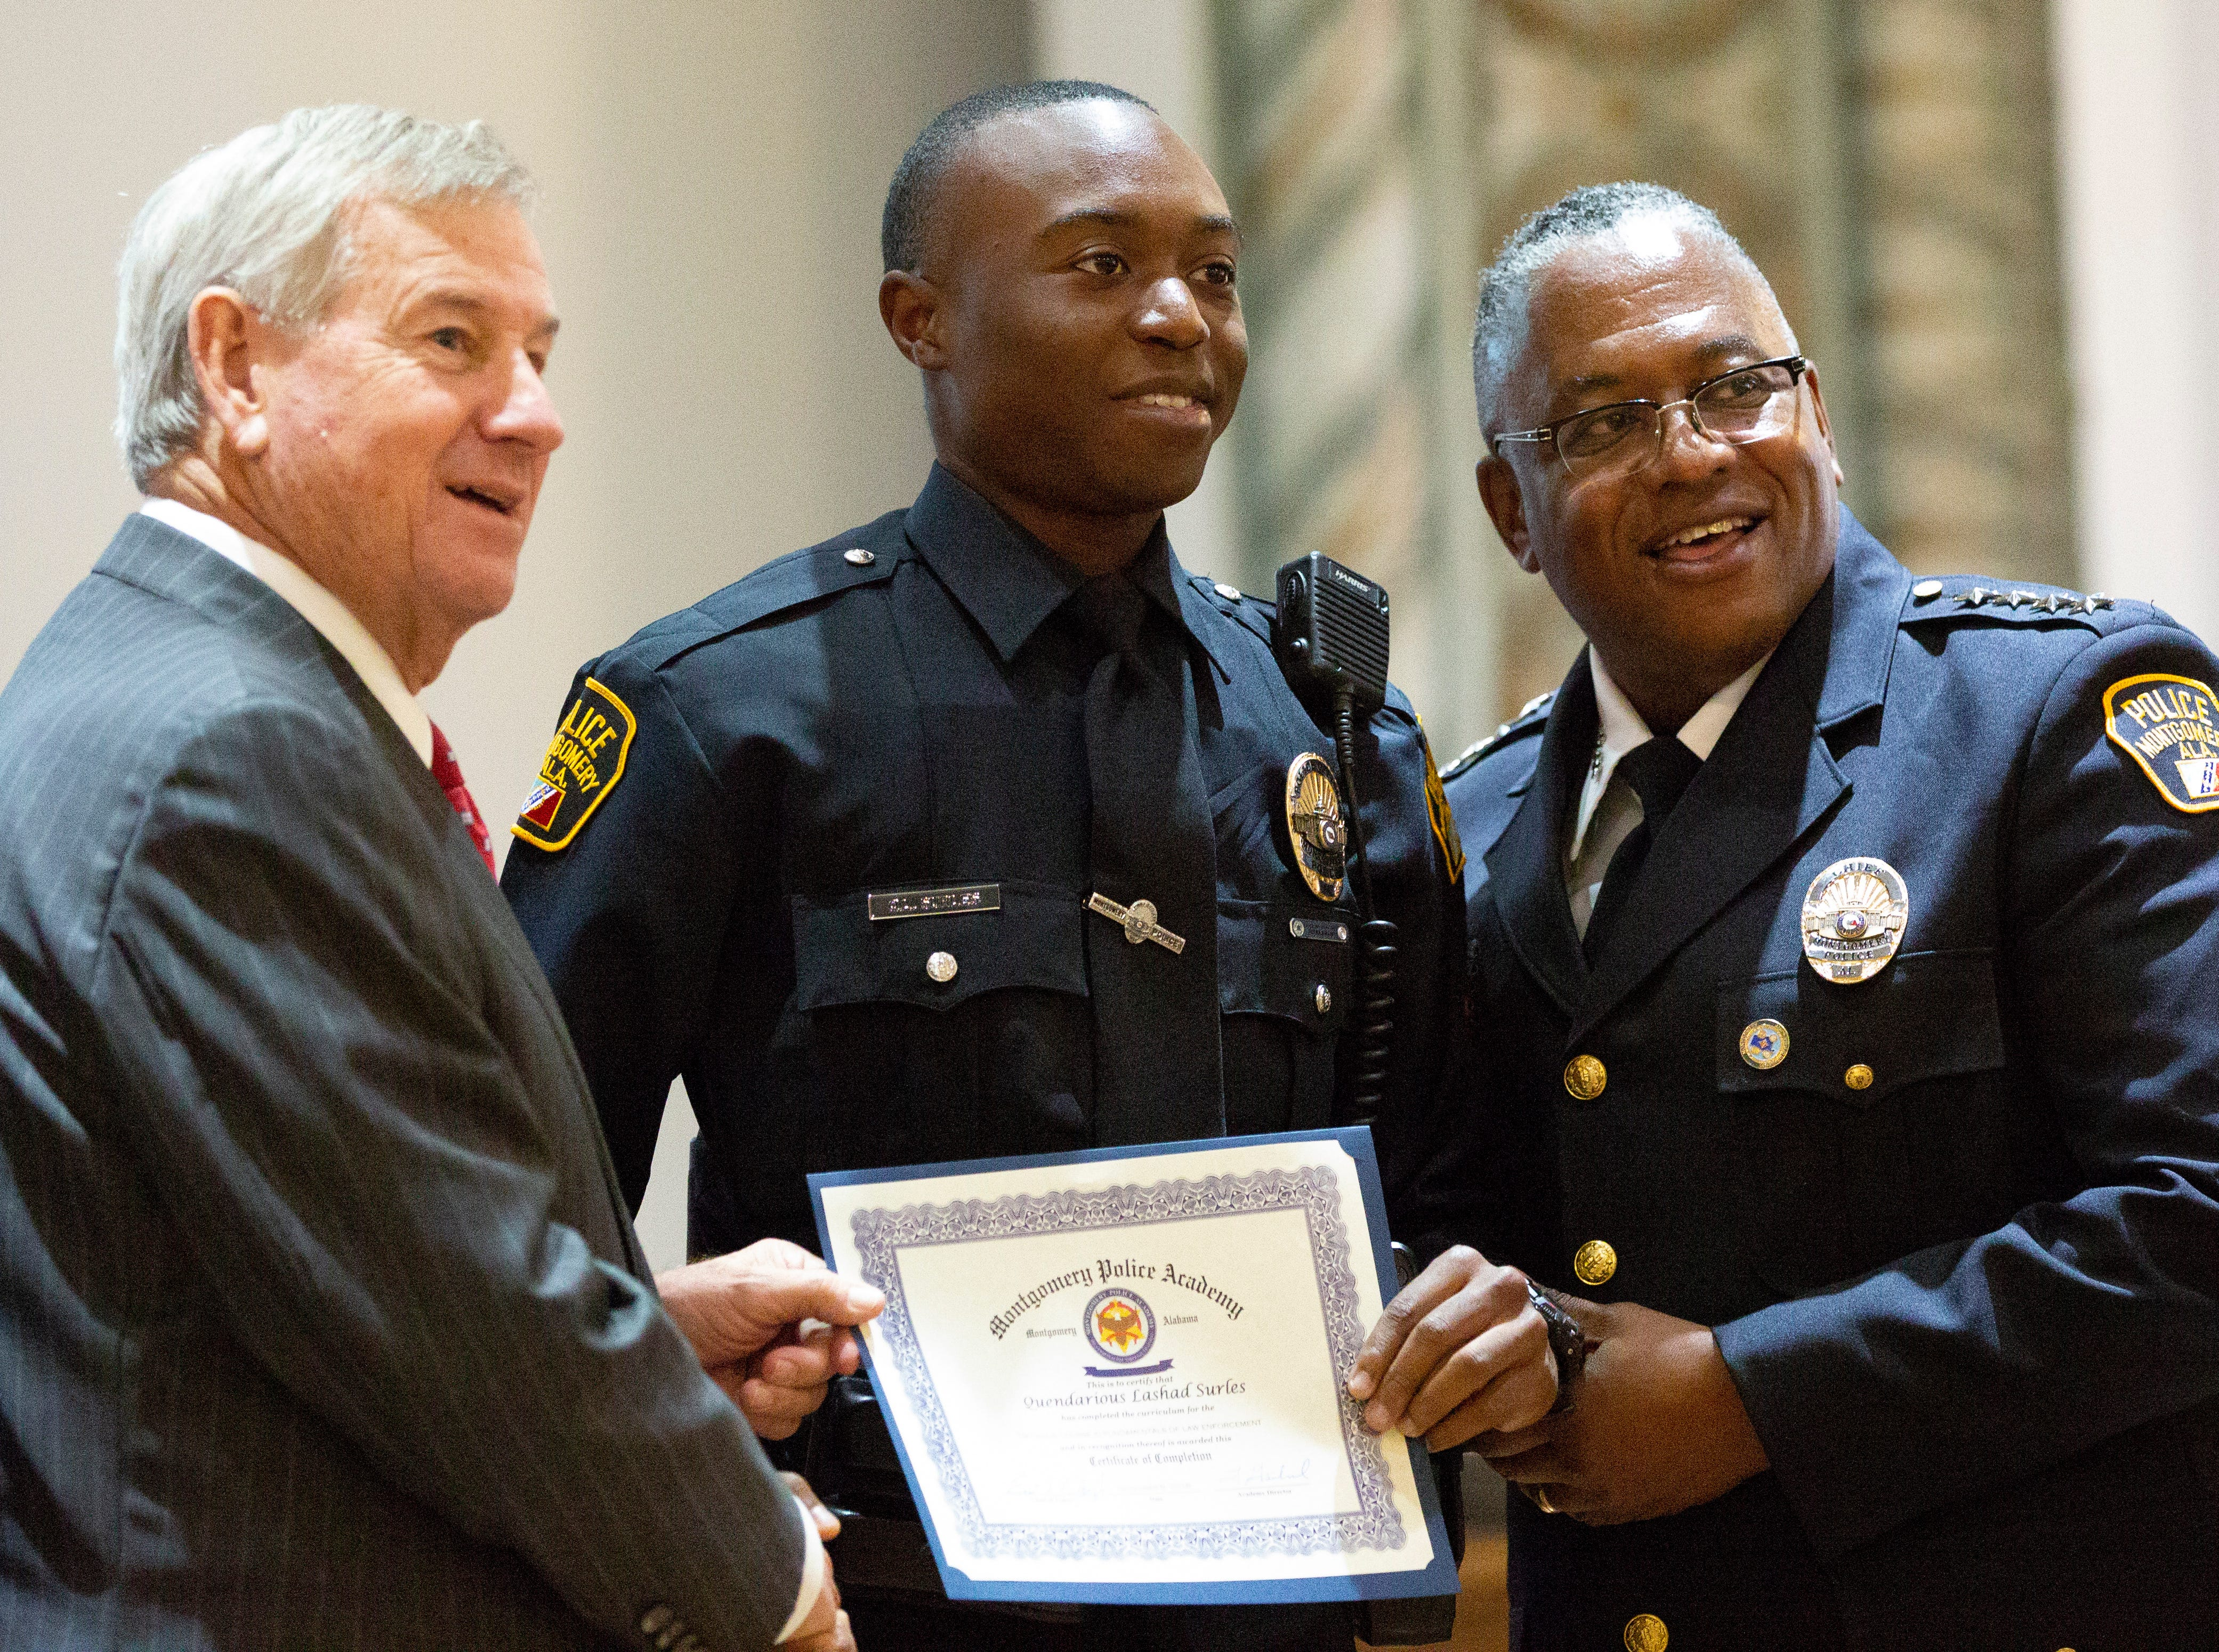 Montgomery police officer Quendarious Surles poses for a photo after graduating from the academy.